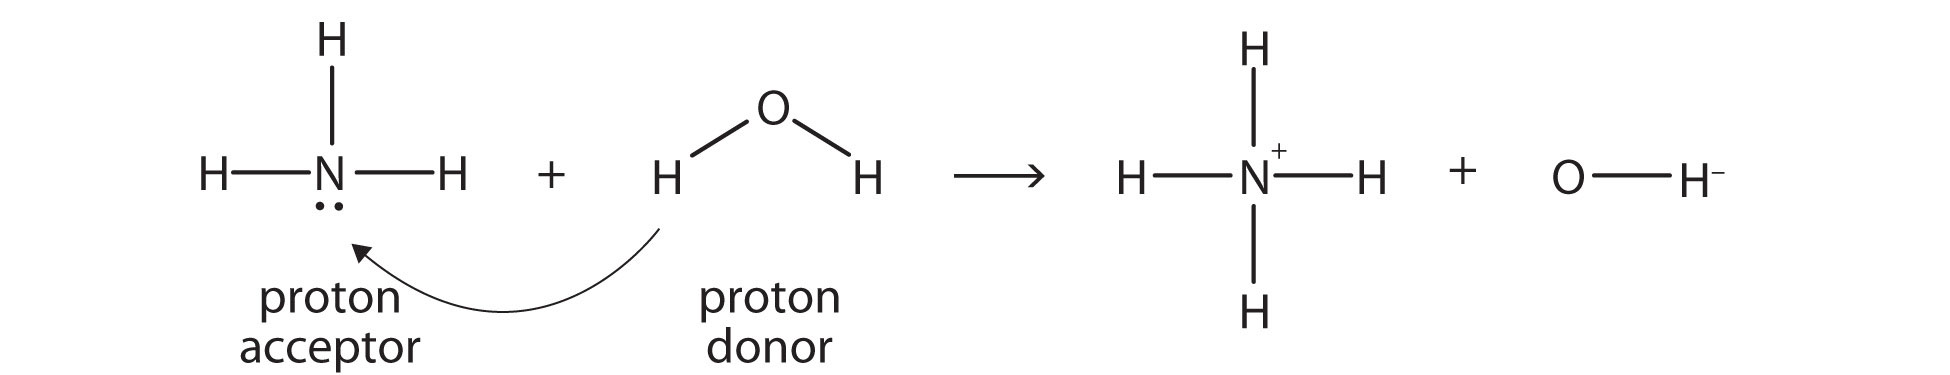 The ammonia acts like a Bronsted-Lowry base, as it generates OH- and water acts like a Bronsted-Lowry acid.